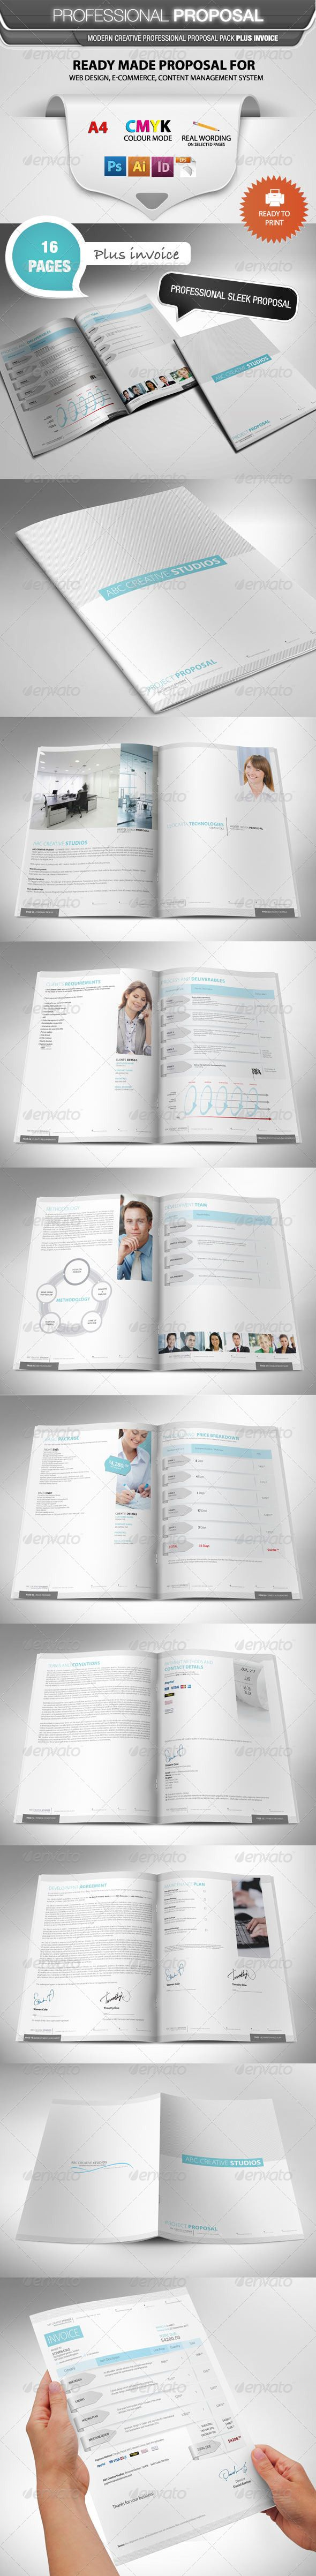 Professional Proposal Template - Proposals & Invoices Stationery